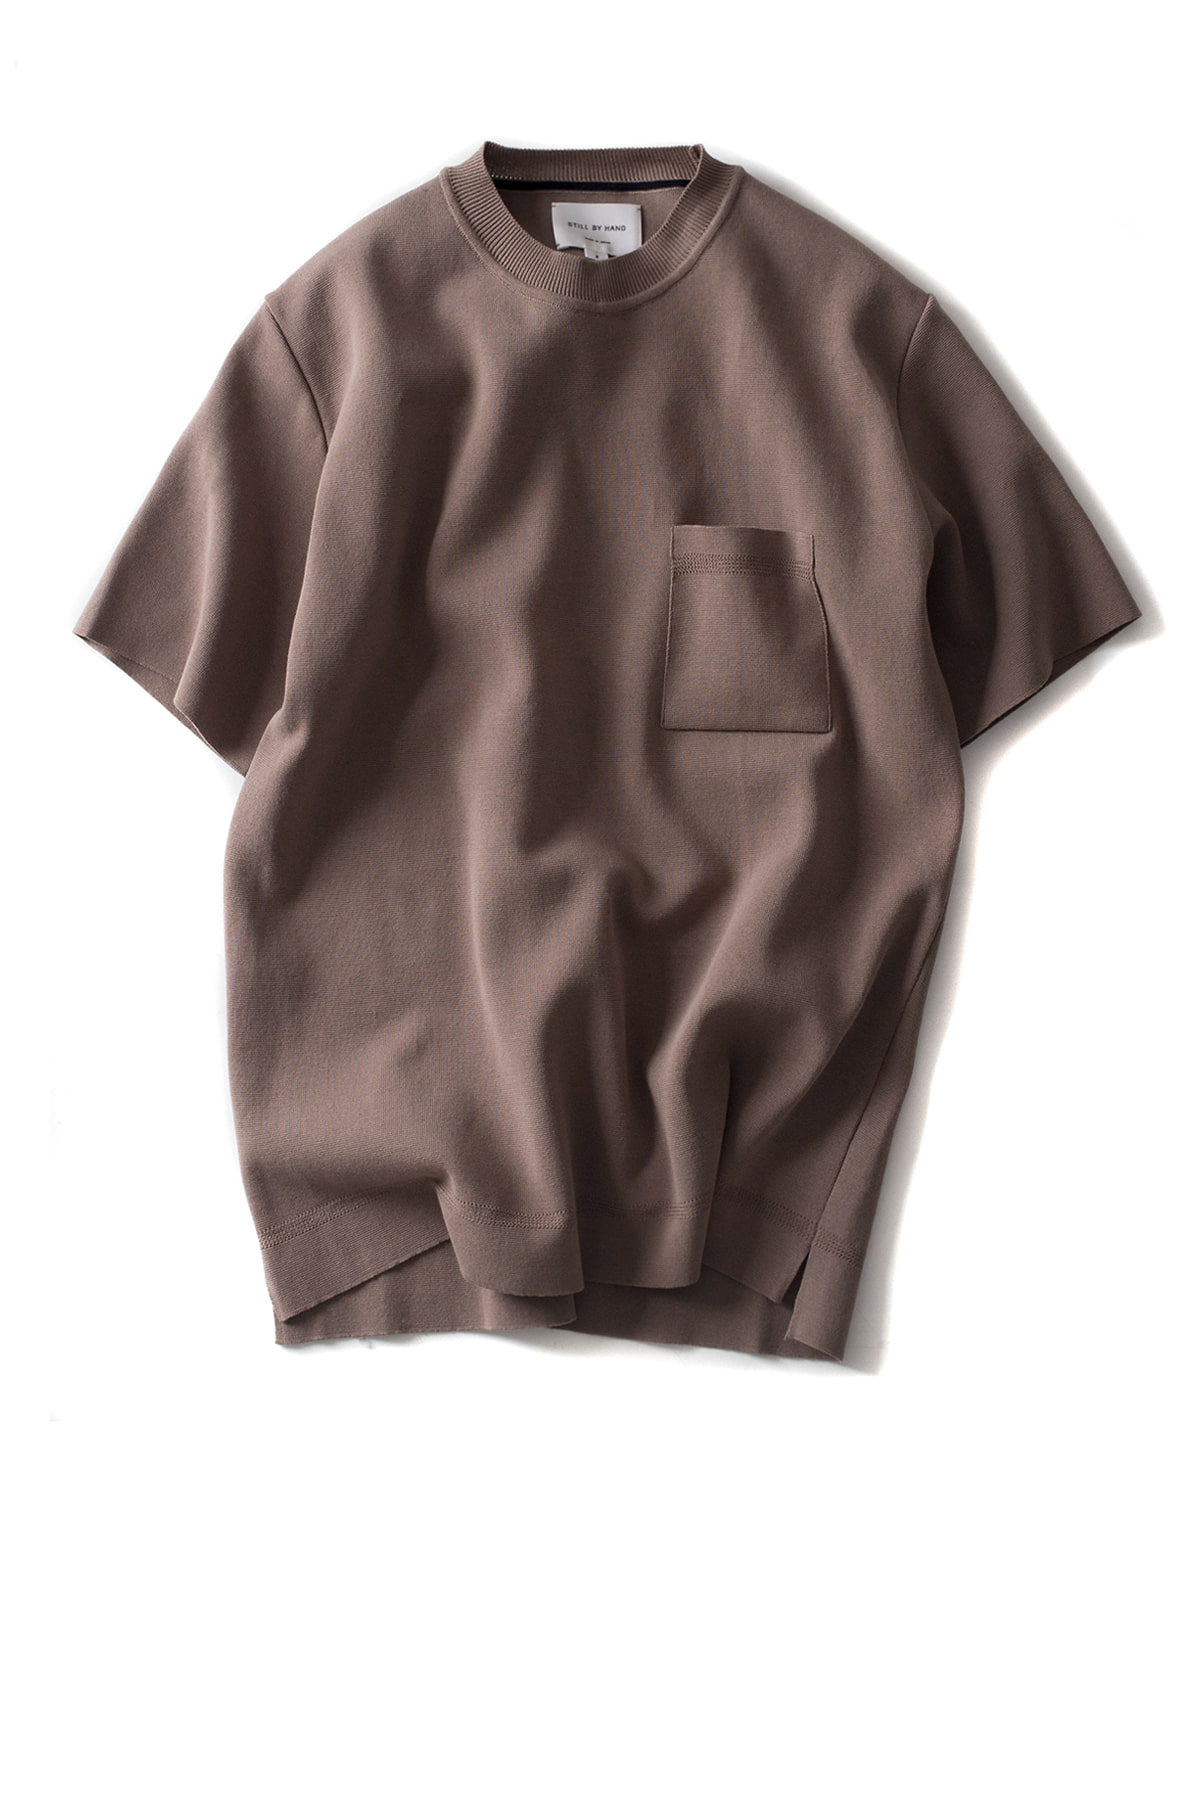 Still by Hand : Milano Rib T-Shirt (Brown)